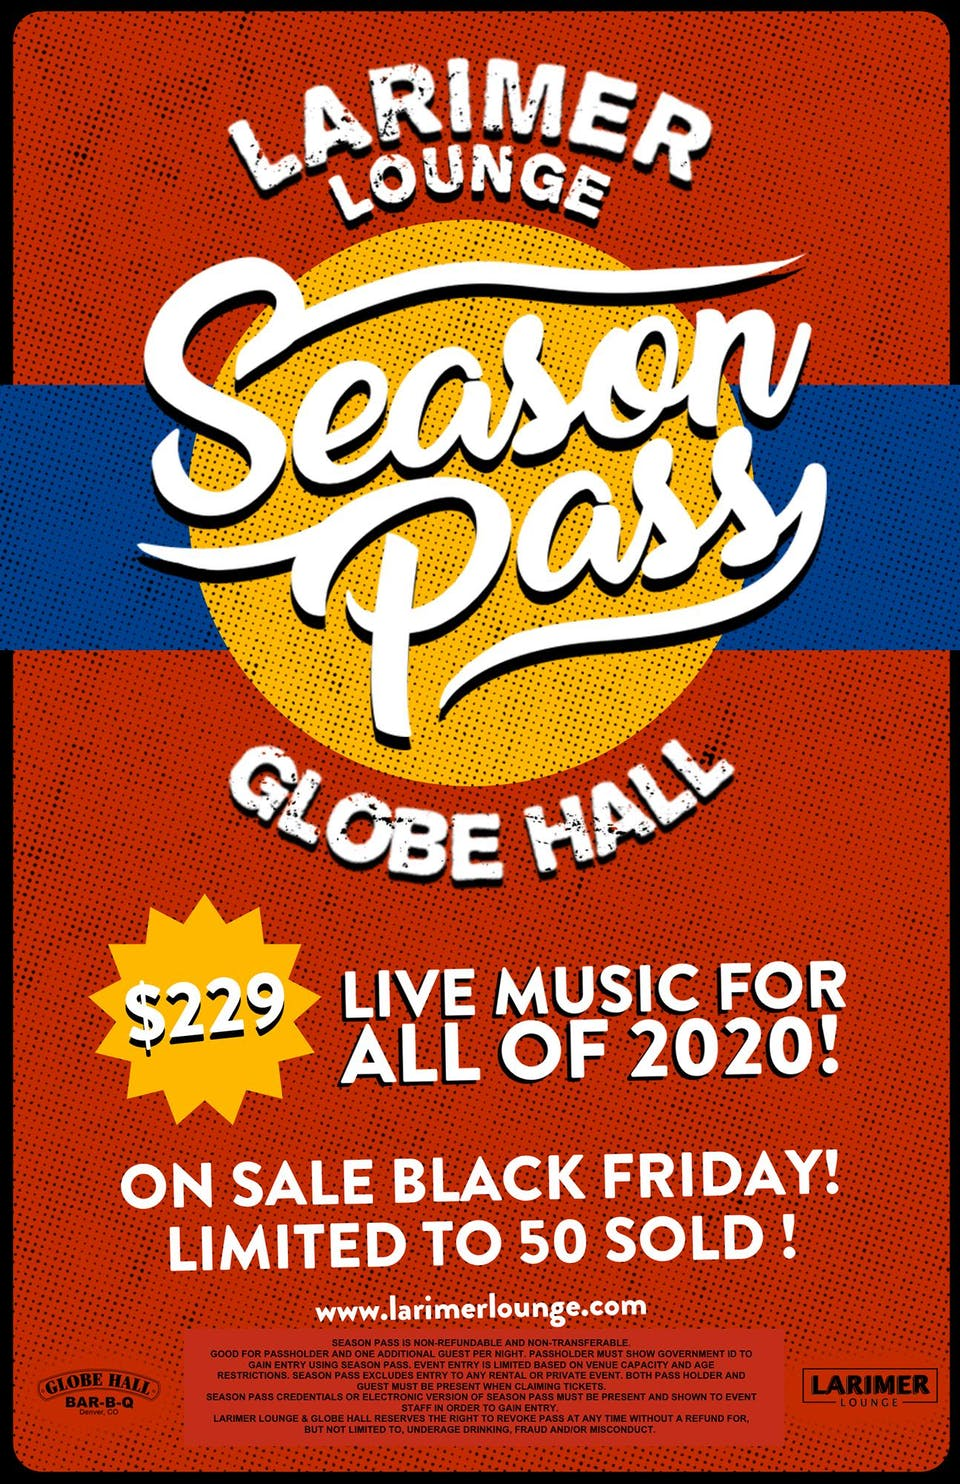 2020 Season Pass for Globe Hall & Larimer Lounge - On Sale Thanksgiving Day